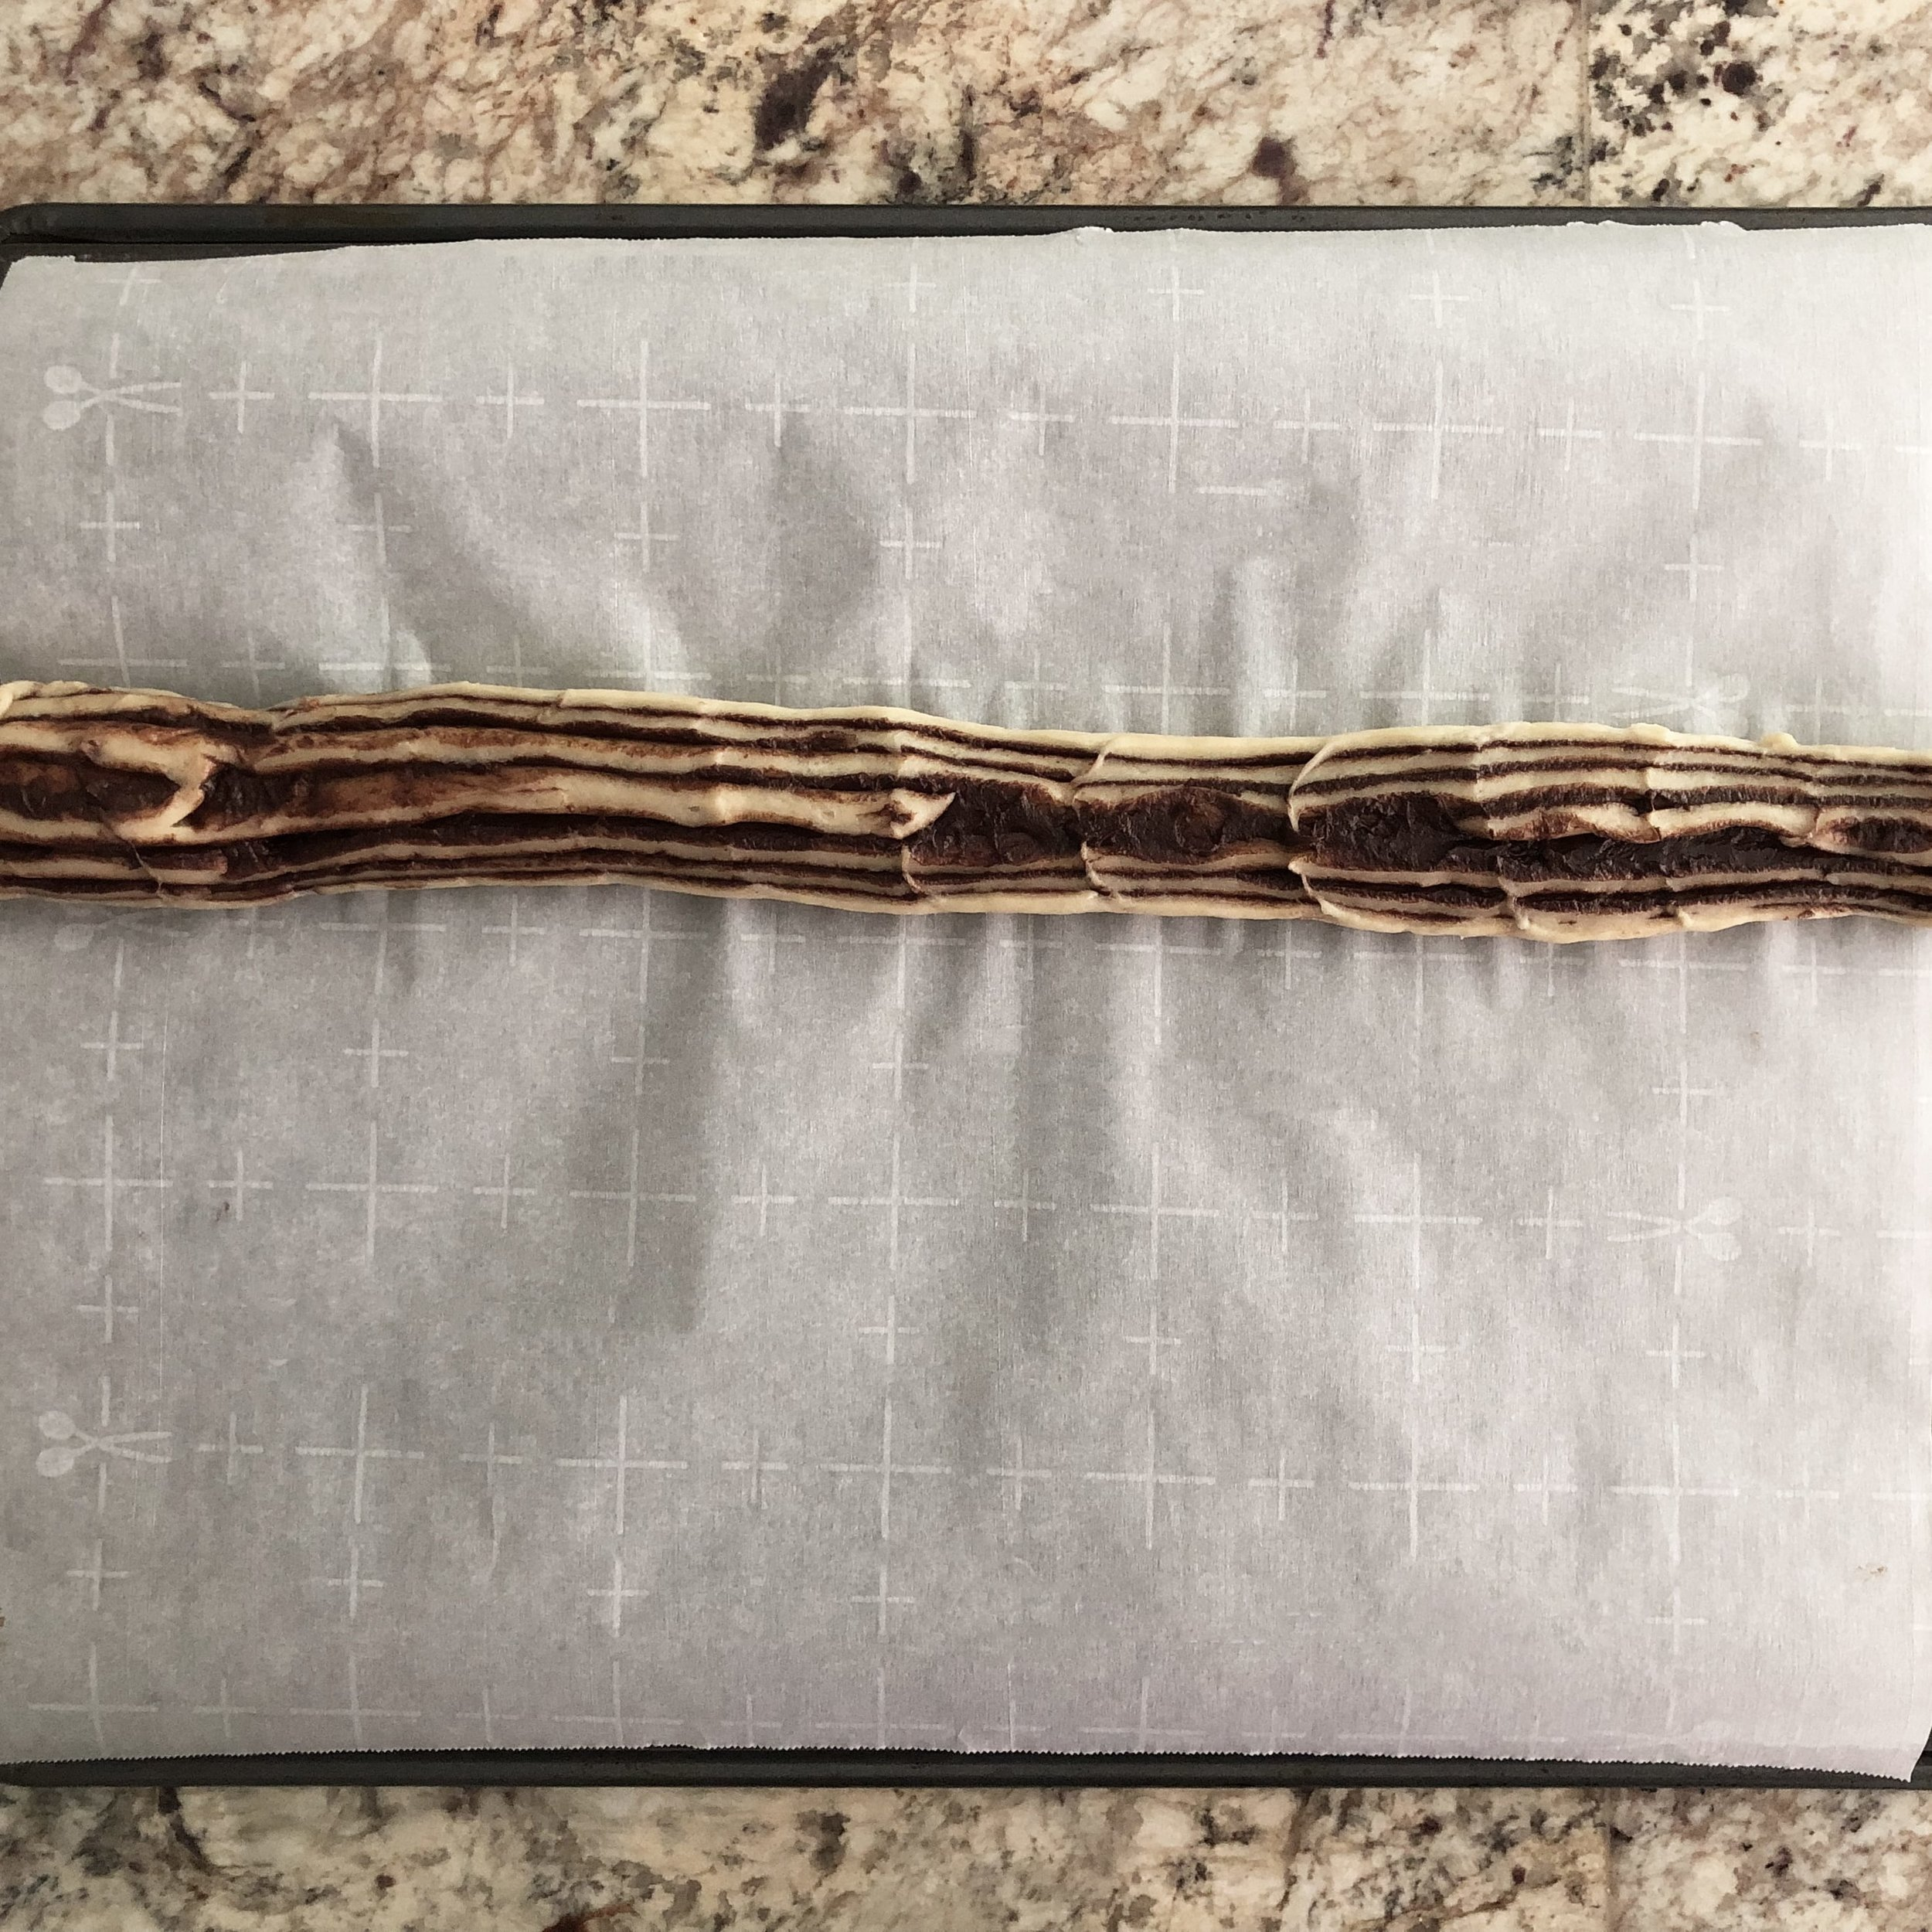 Place the first strip horizontally on a parchment-lined pan.